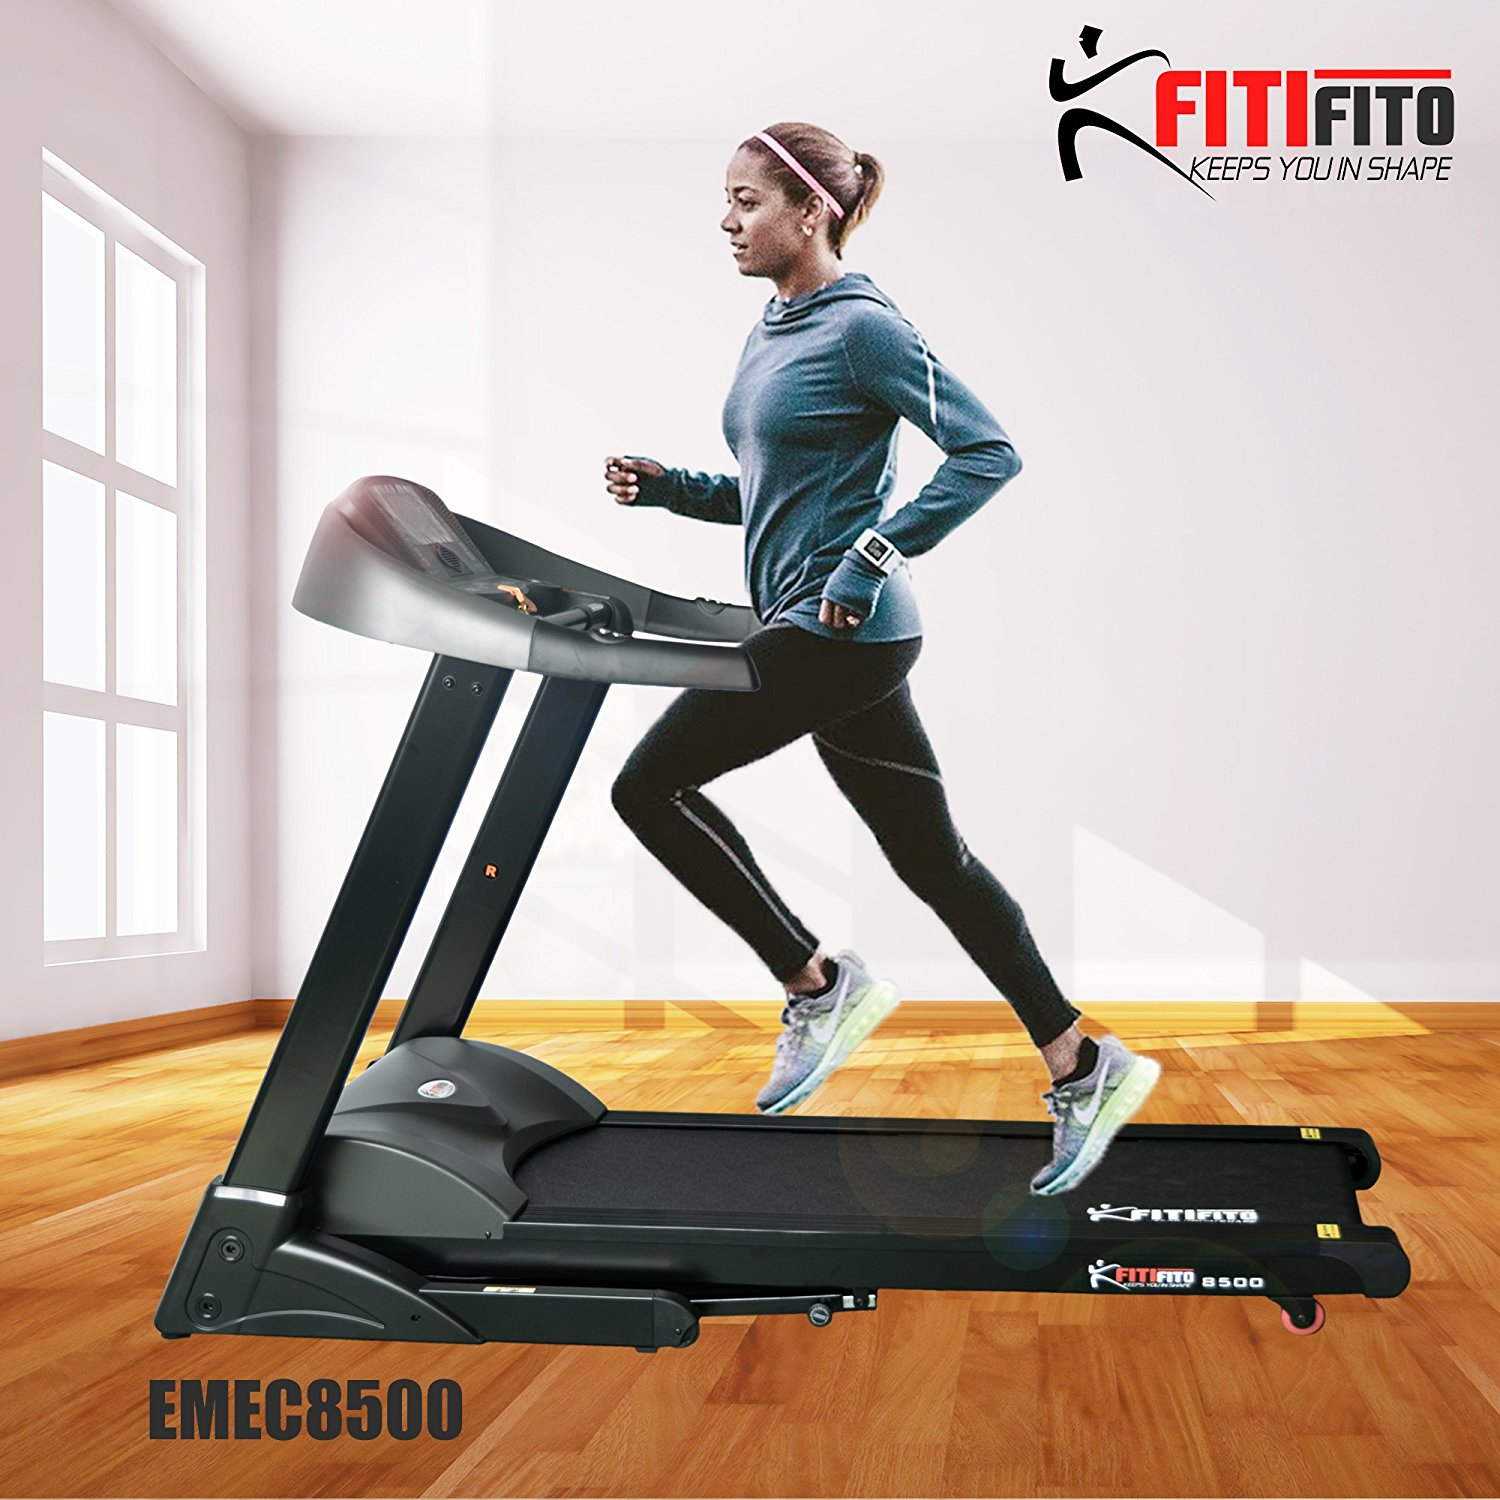 Laufband Test FitiFito 8500